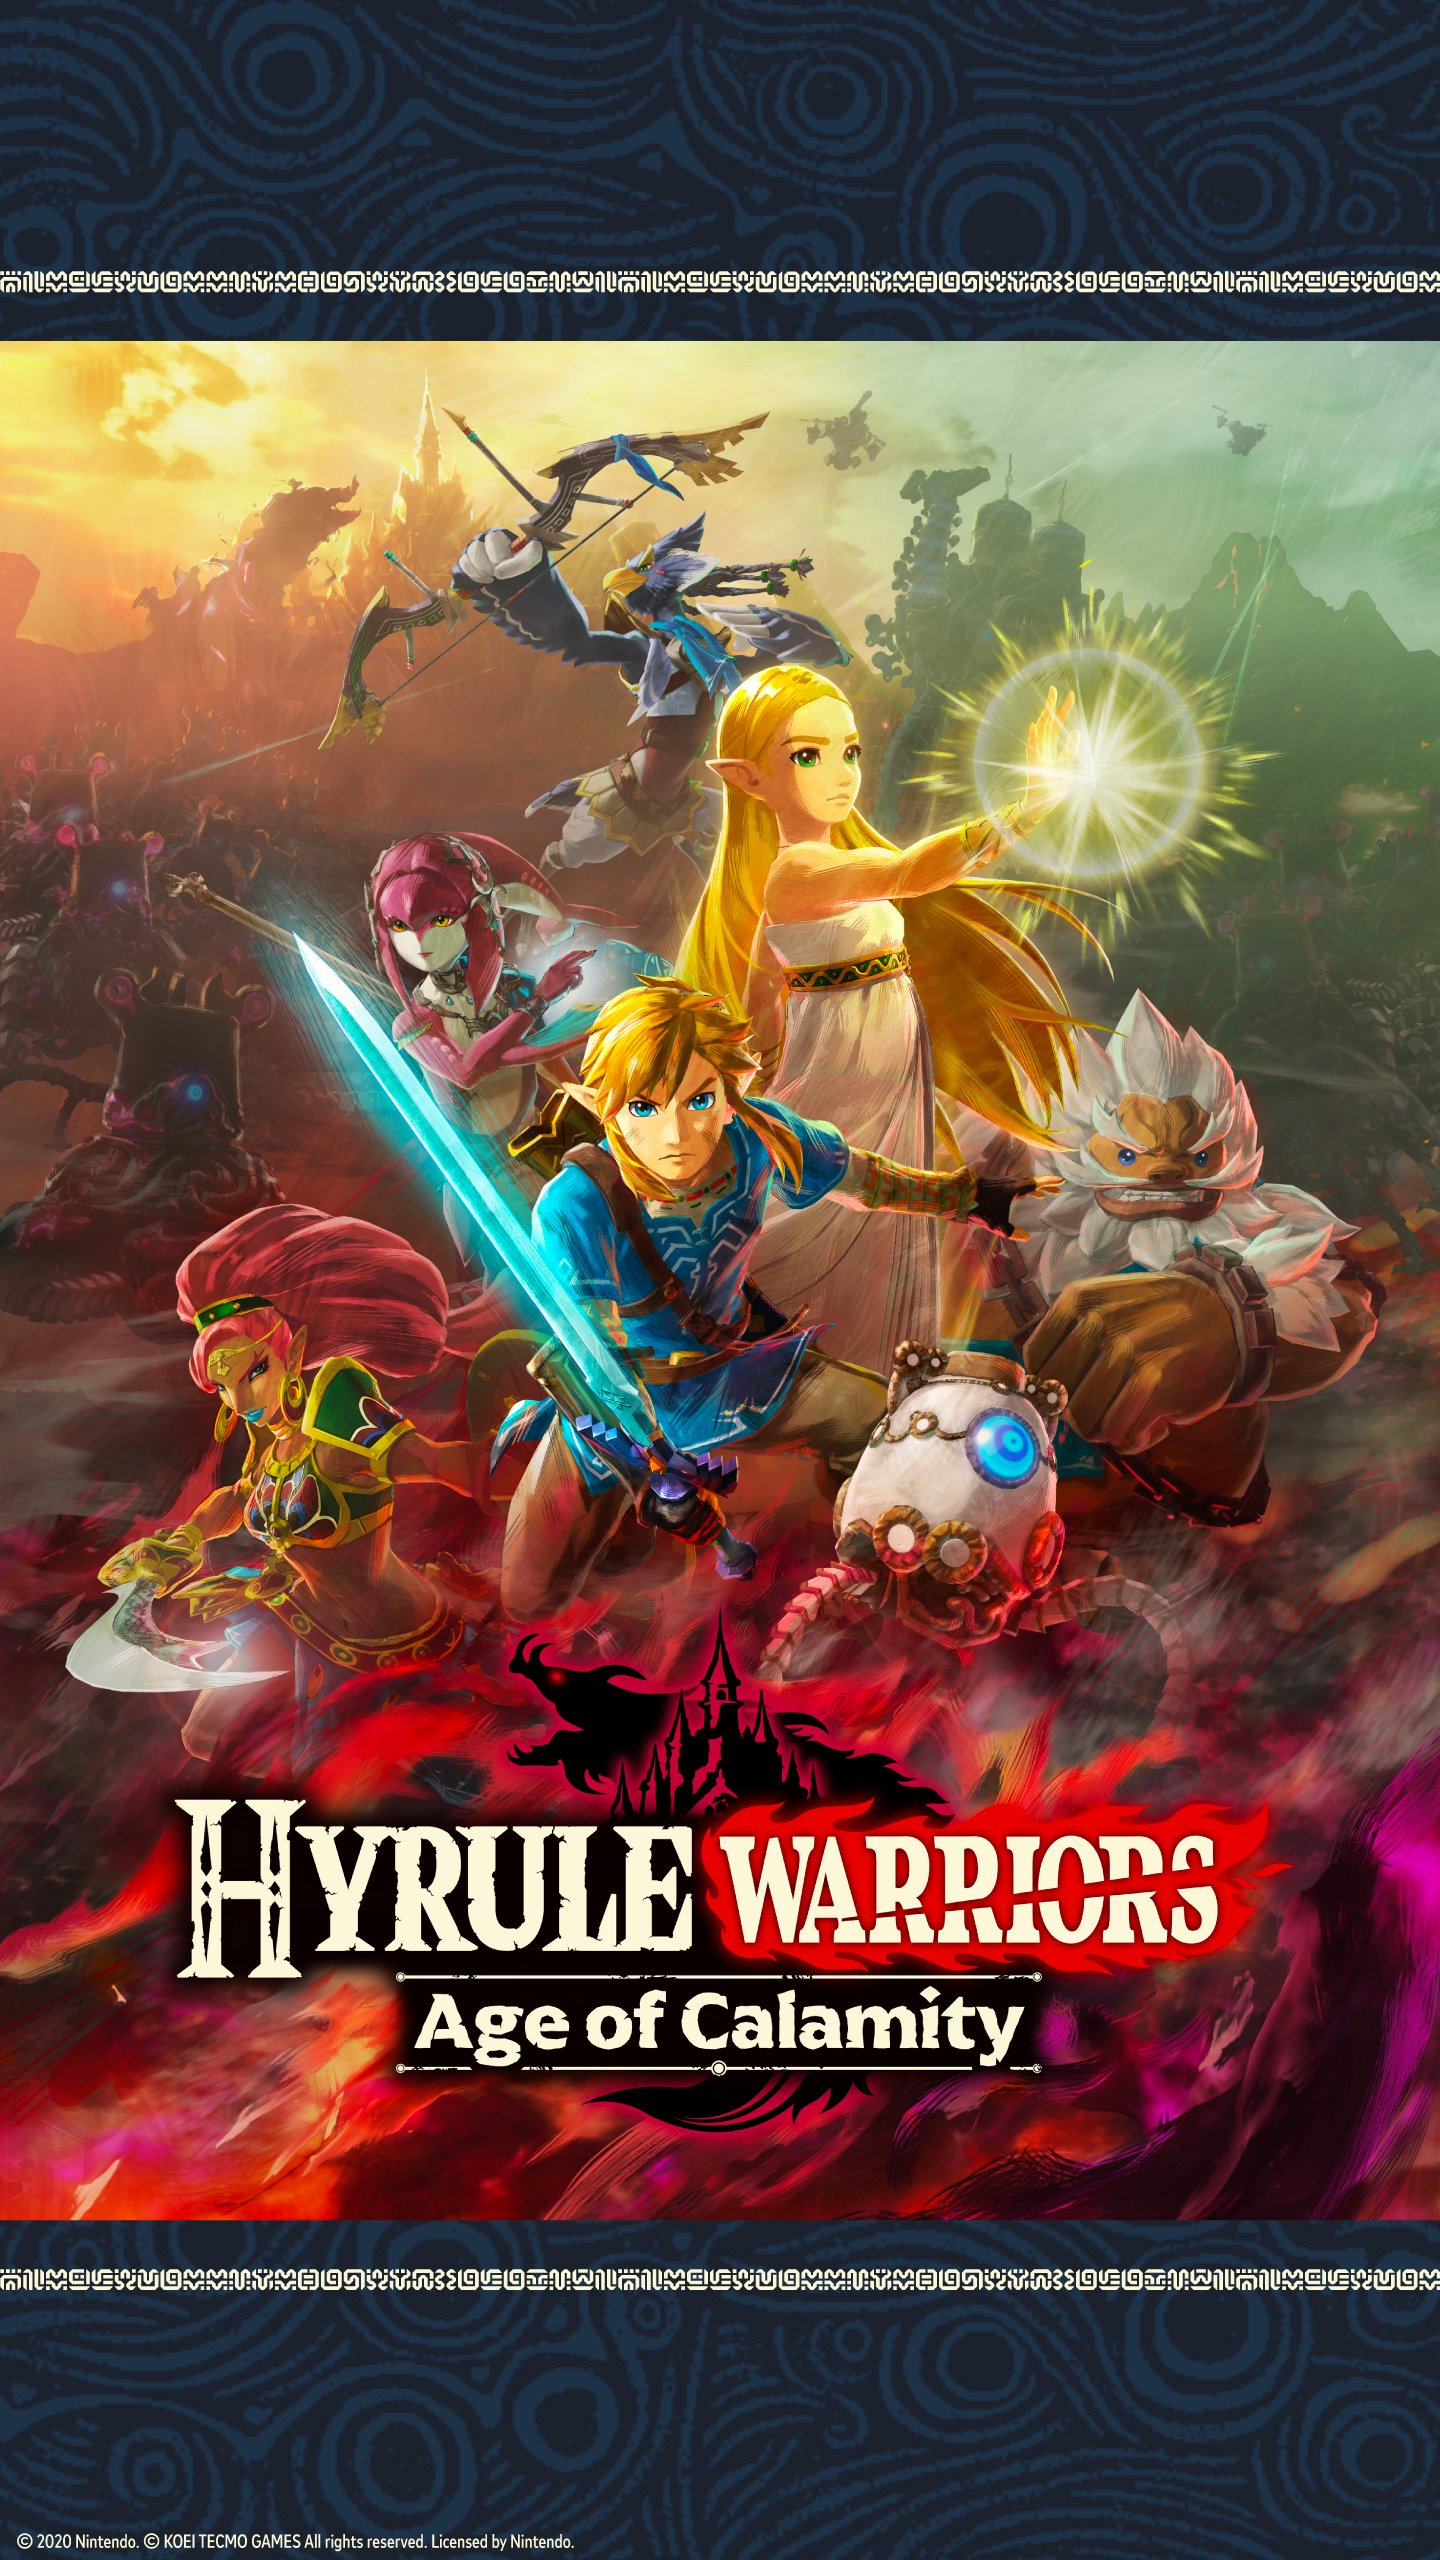 Video Game Hyrule Warriors Age Of Calamity 1440x2560 Wallpaper Id 889900 Mobile Abyss